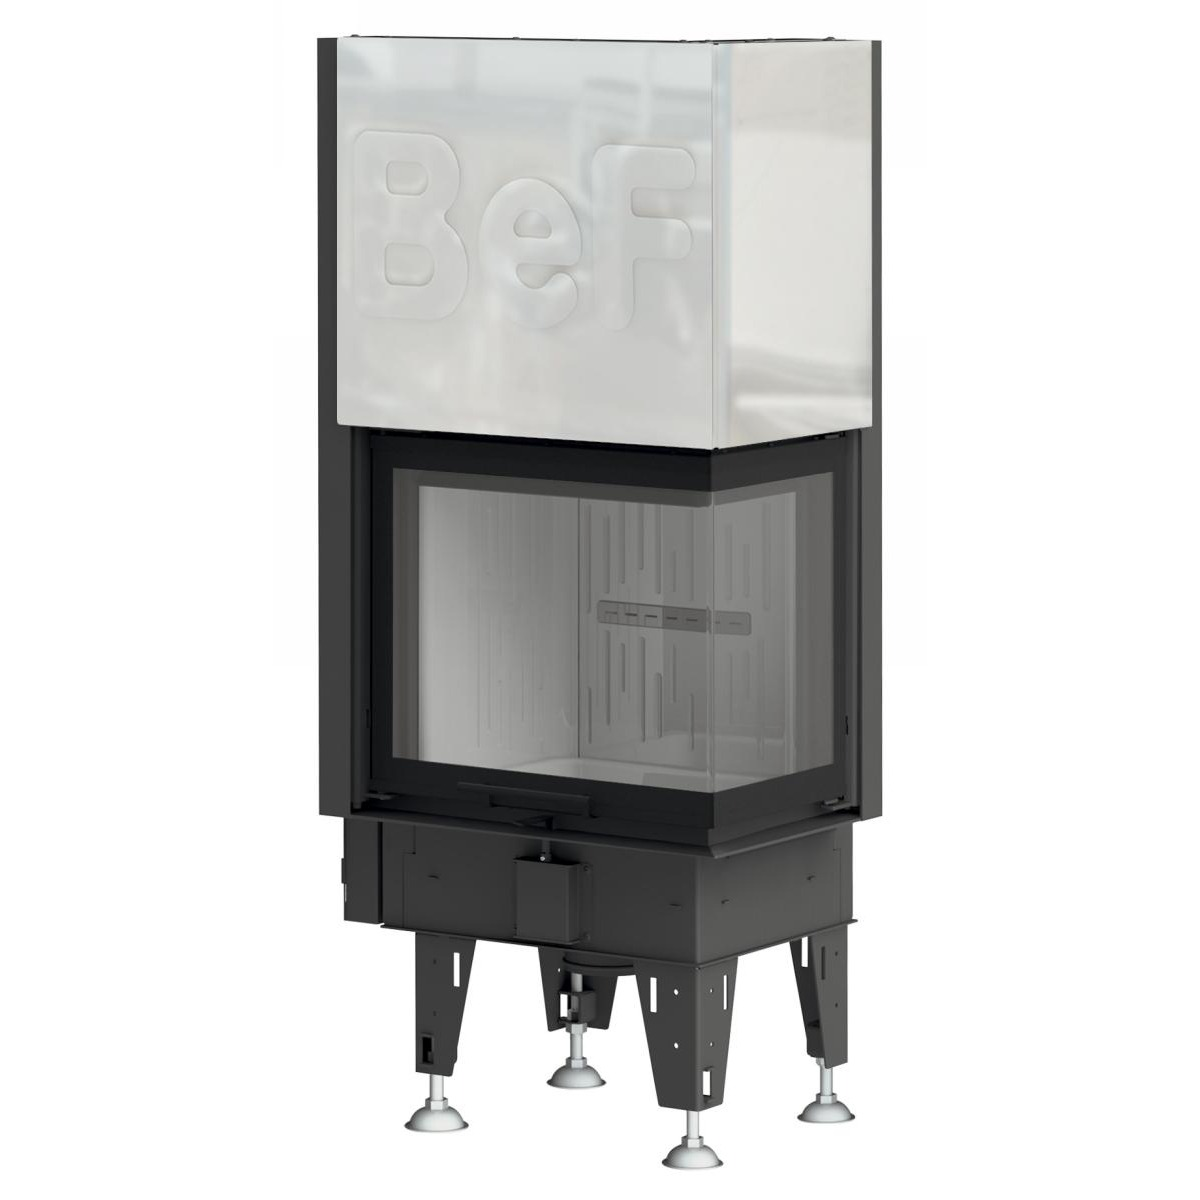 BeF Aquatic WH V 65 CP boiler fireplace insert